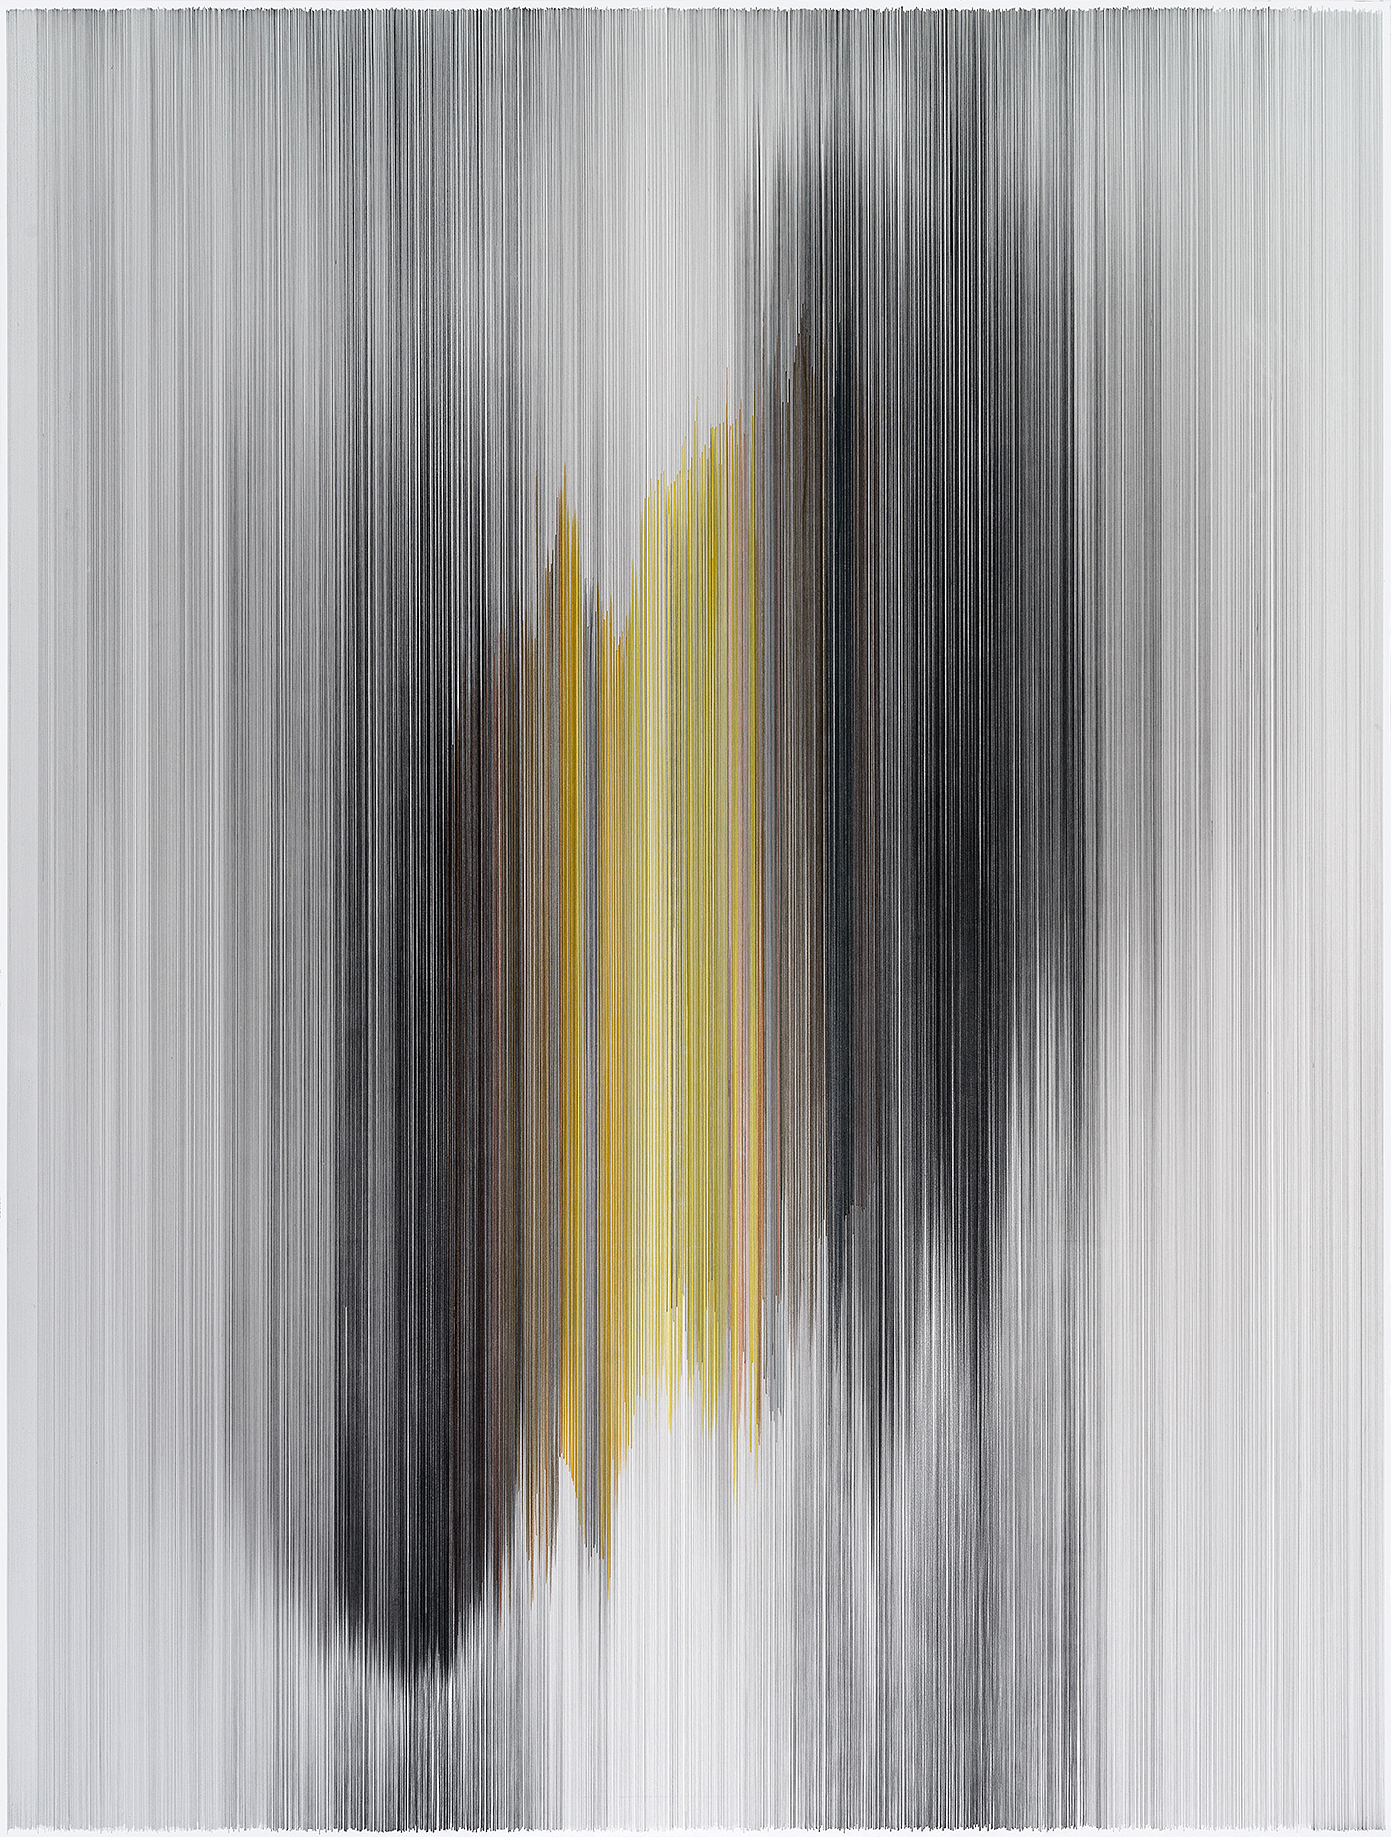 parallel 45  2014 graphite & colored pencil on mat board 60 by 80 inches